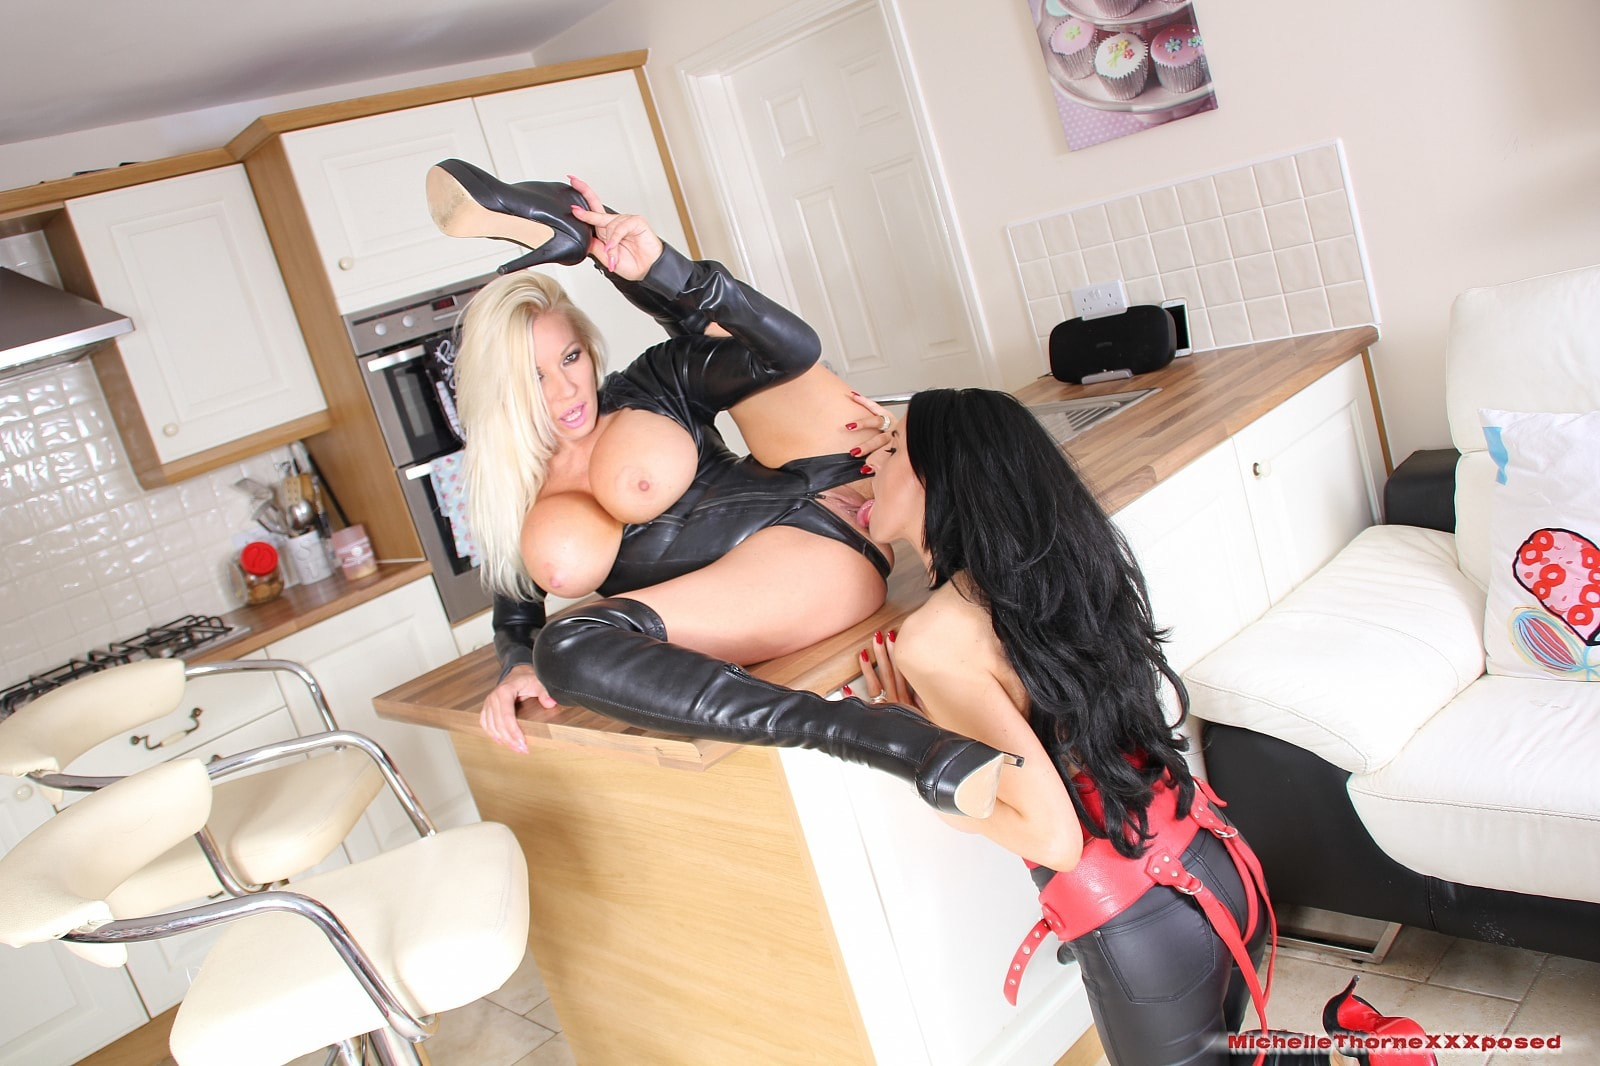 Michelle Thorne 'Riding The Strapon' starring Louise Jenson (photo 7)